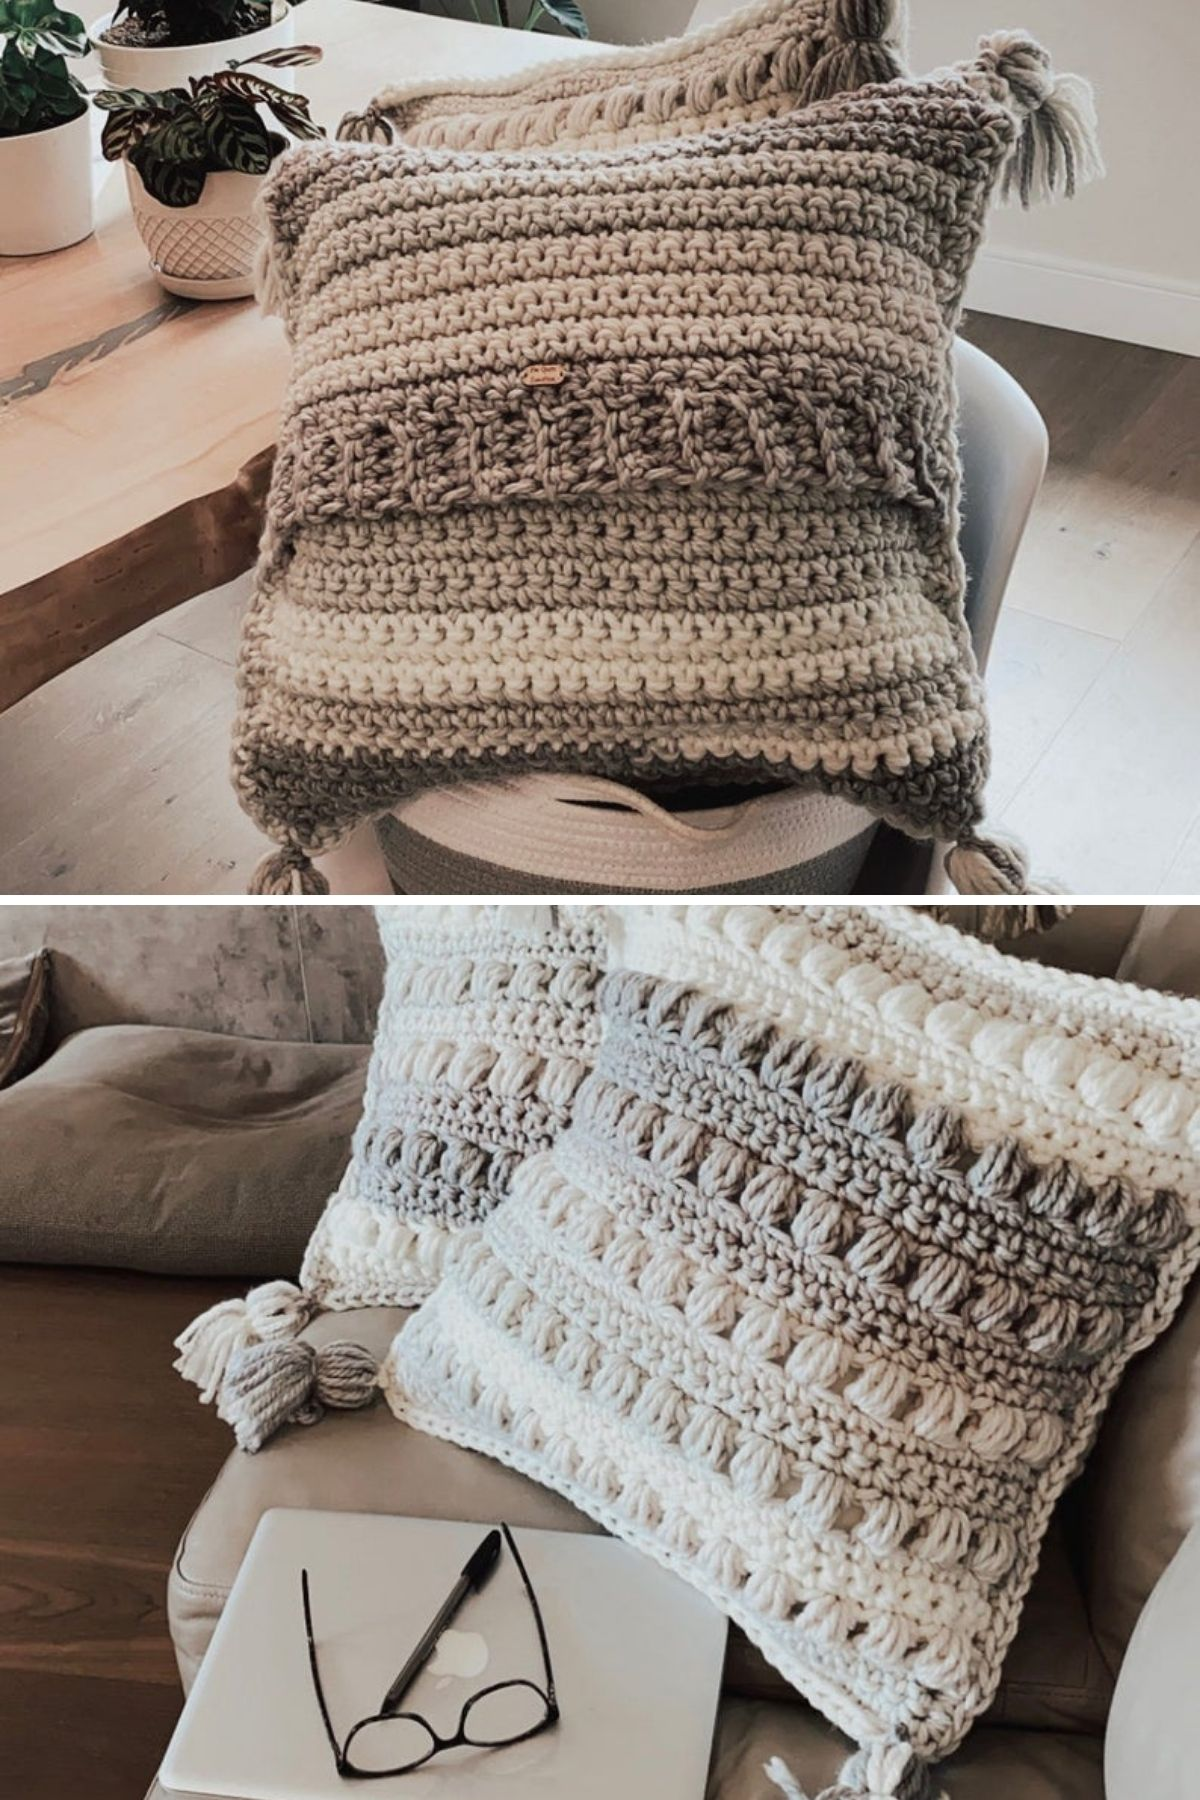 Gray and cream pillow with textured pattern